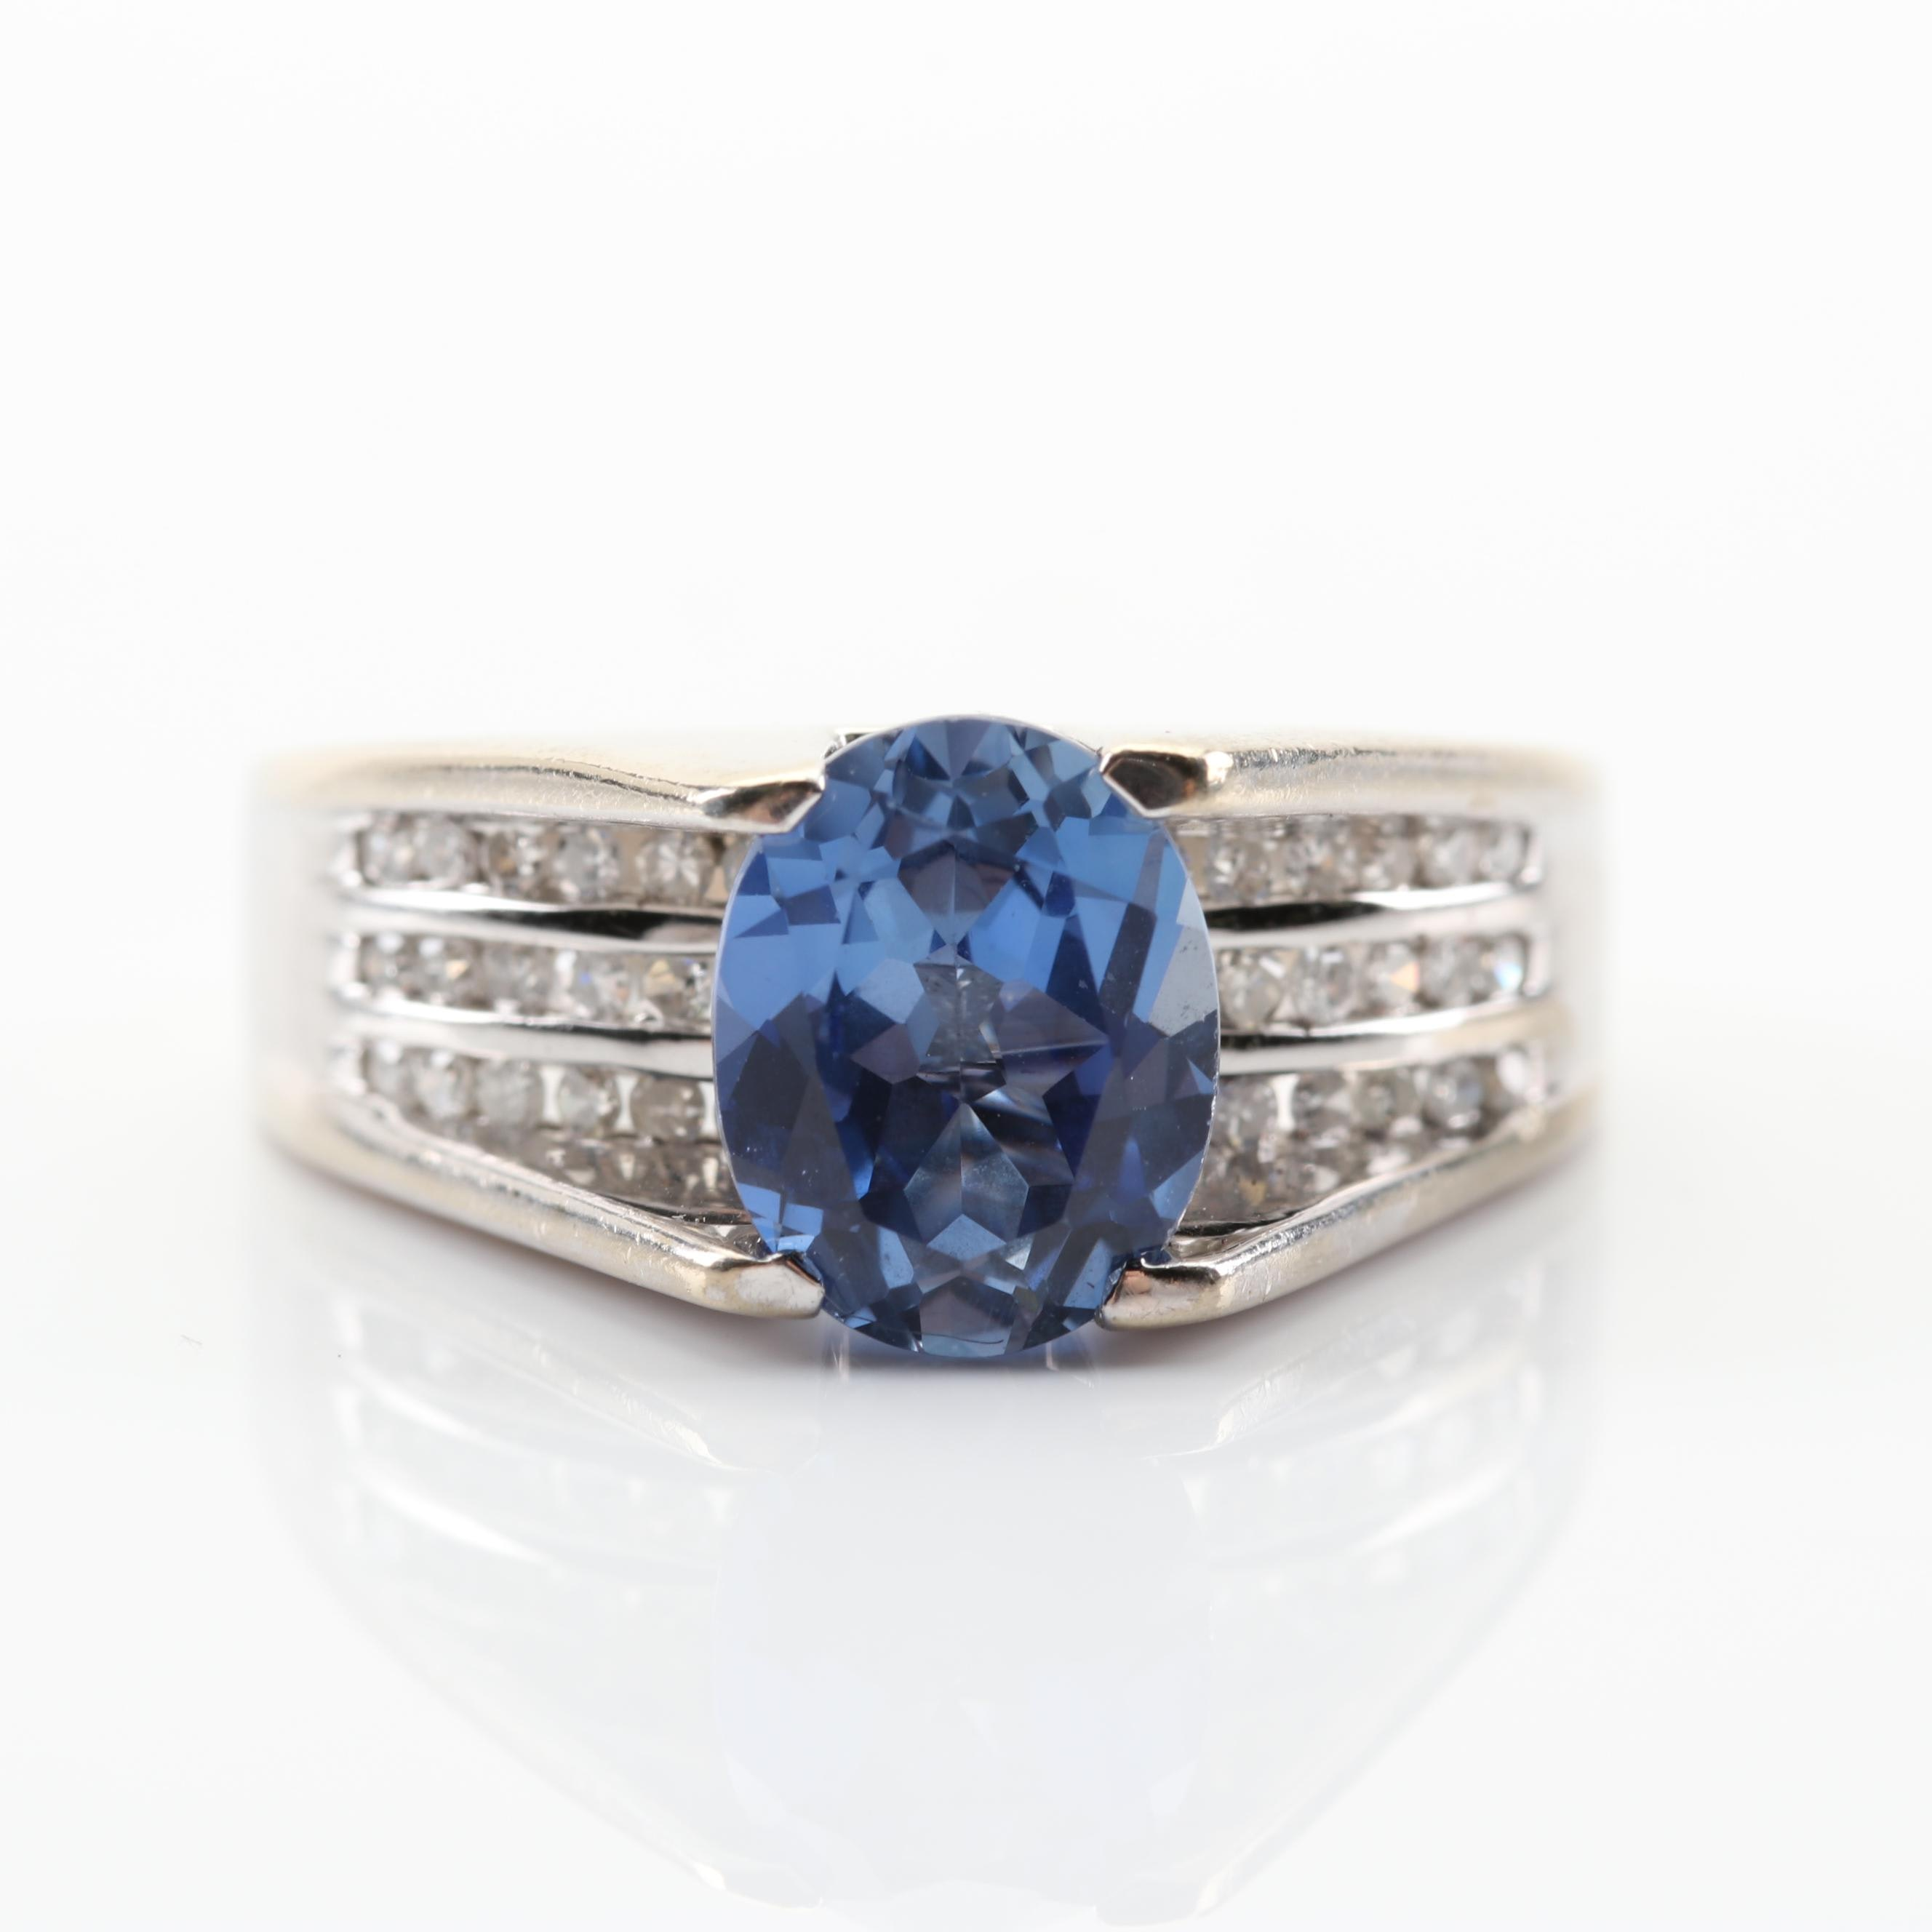 10K White Gold 2.47 CT Sapphire and Diamond Ring